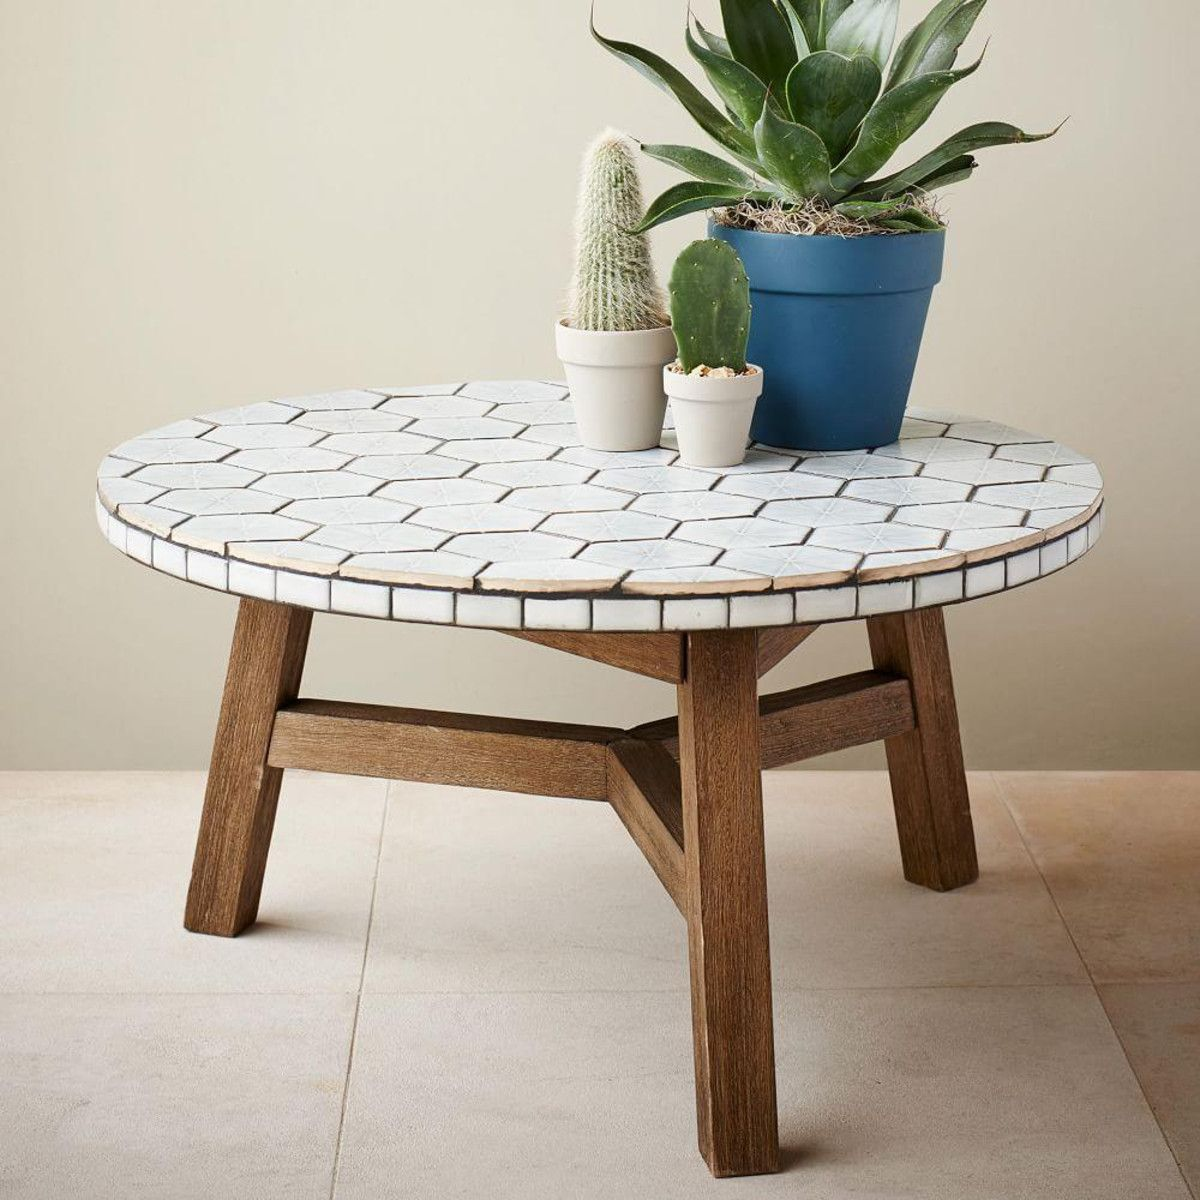 Tile Coffee Table Set: Add A Little Art To Your Outdoor Space With The Mosaic